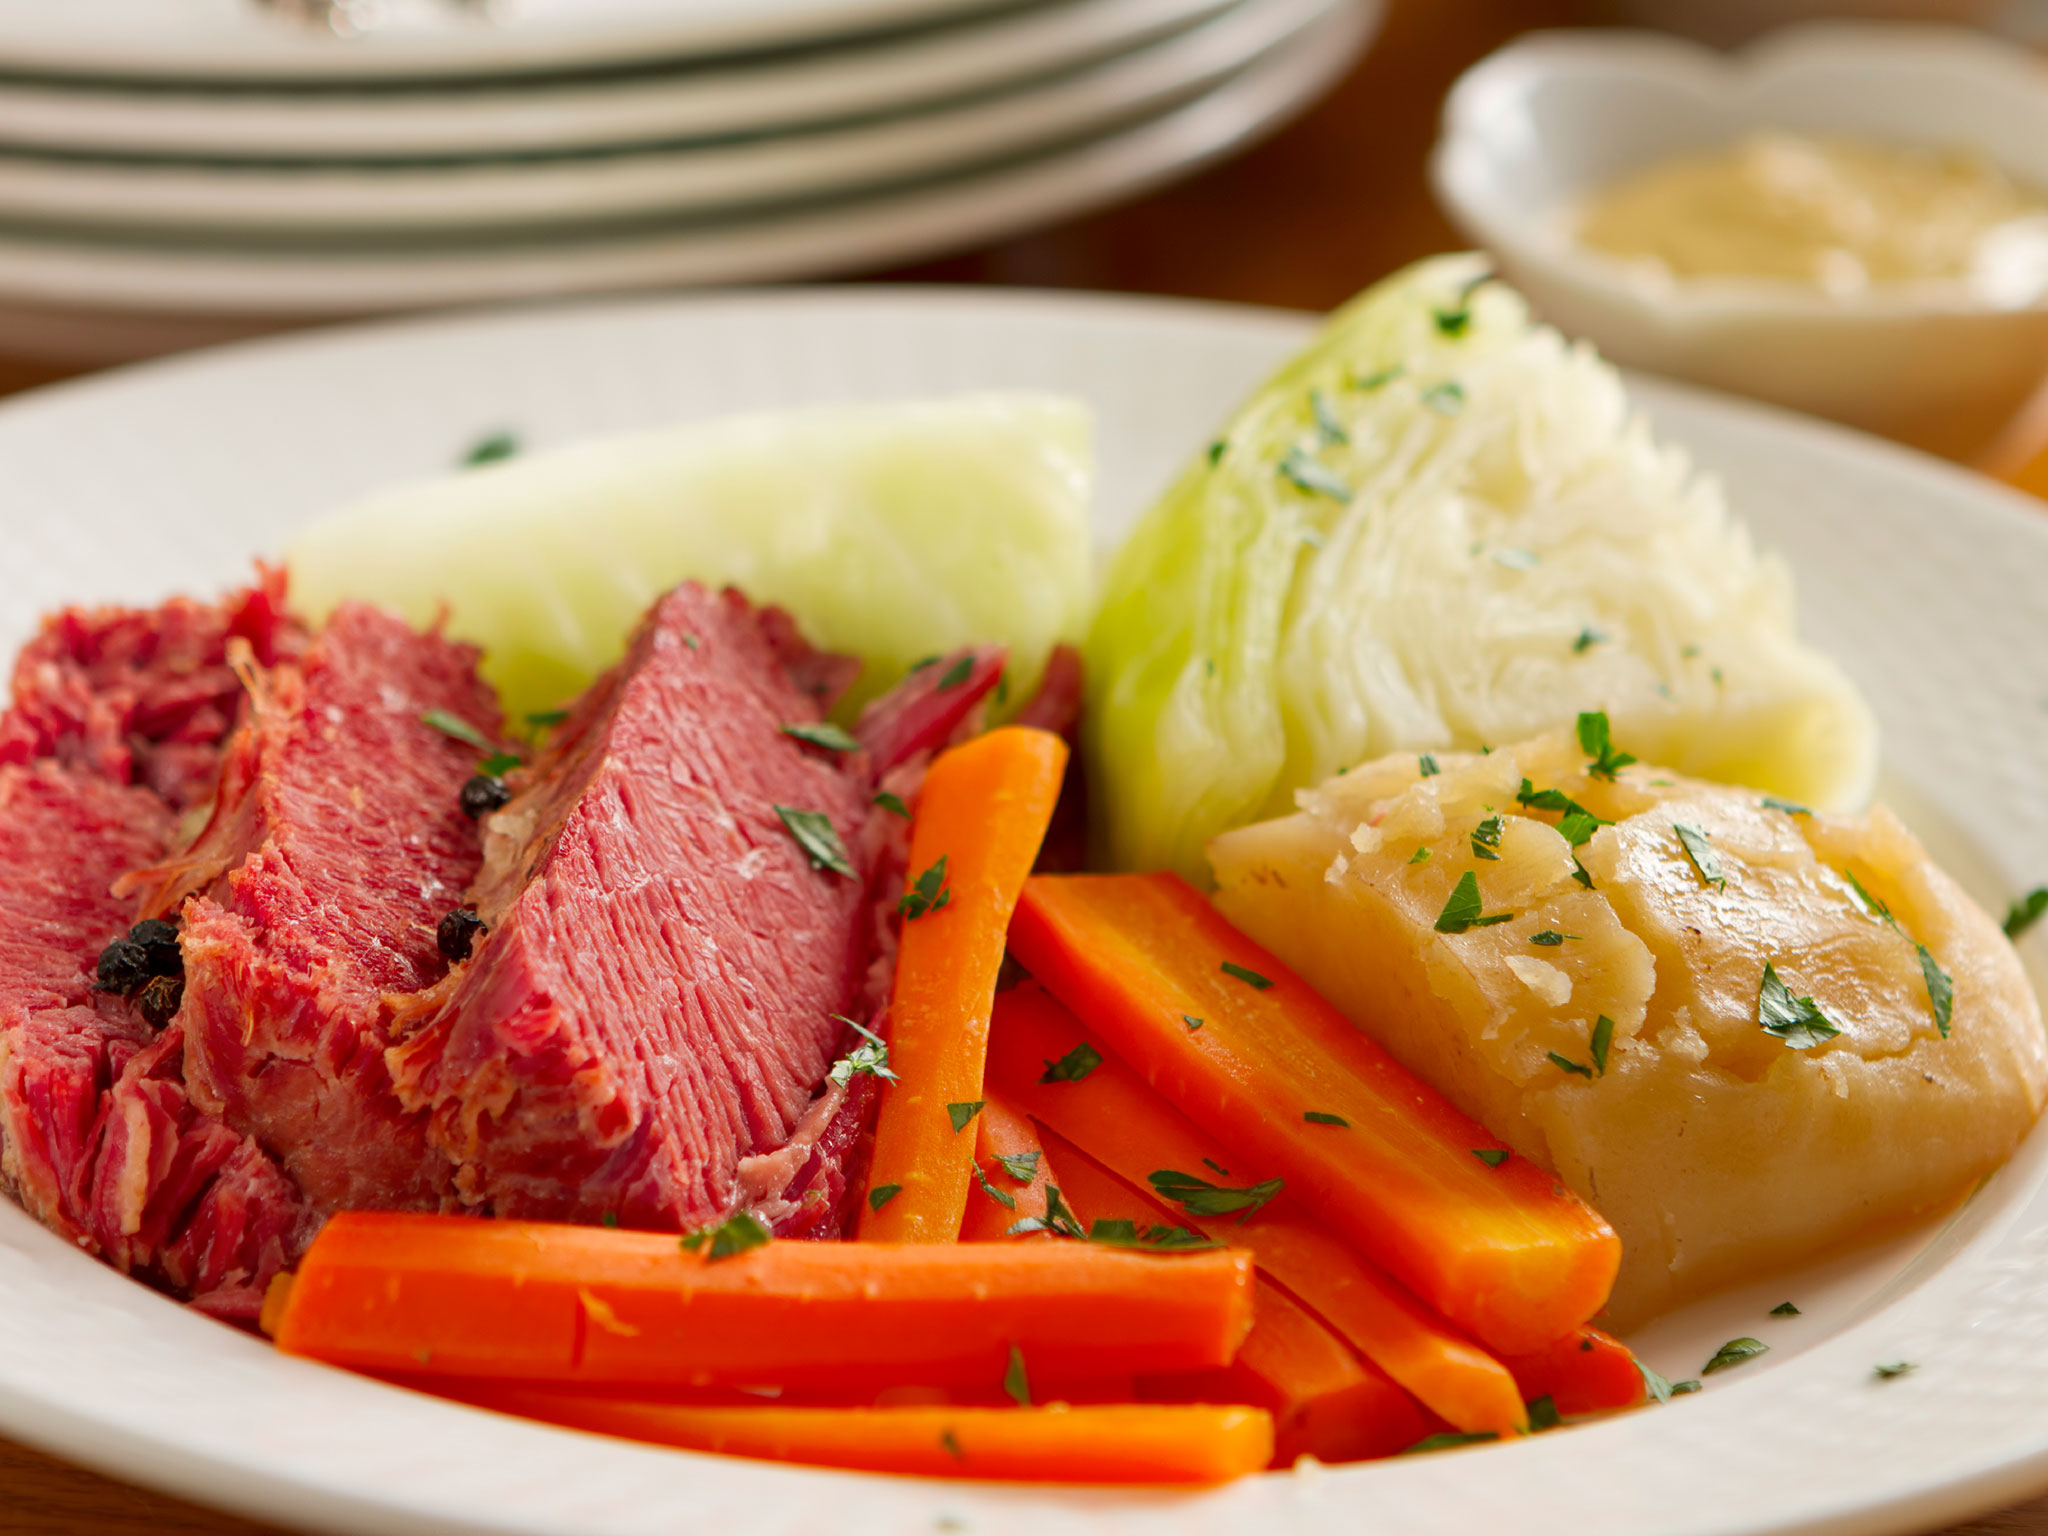 Corned Beef and Cabbage: As Irish as Spaghetti and Meatballs